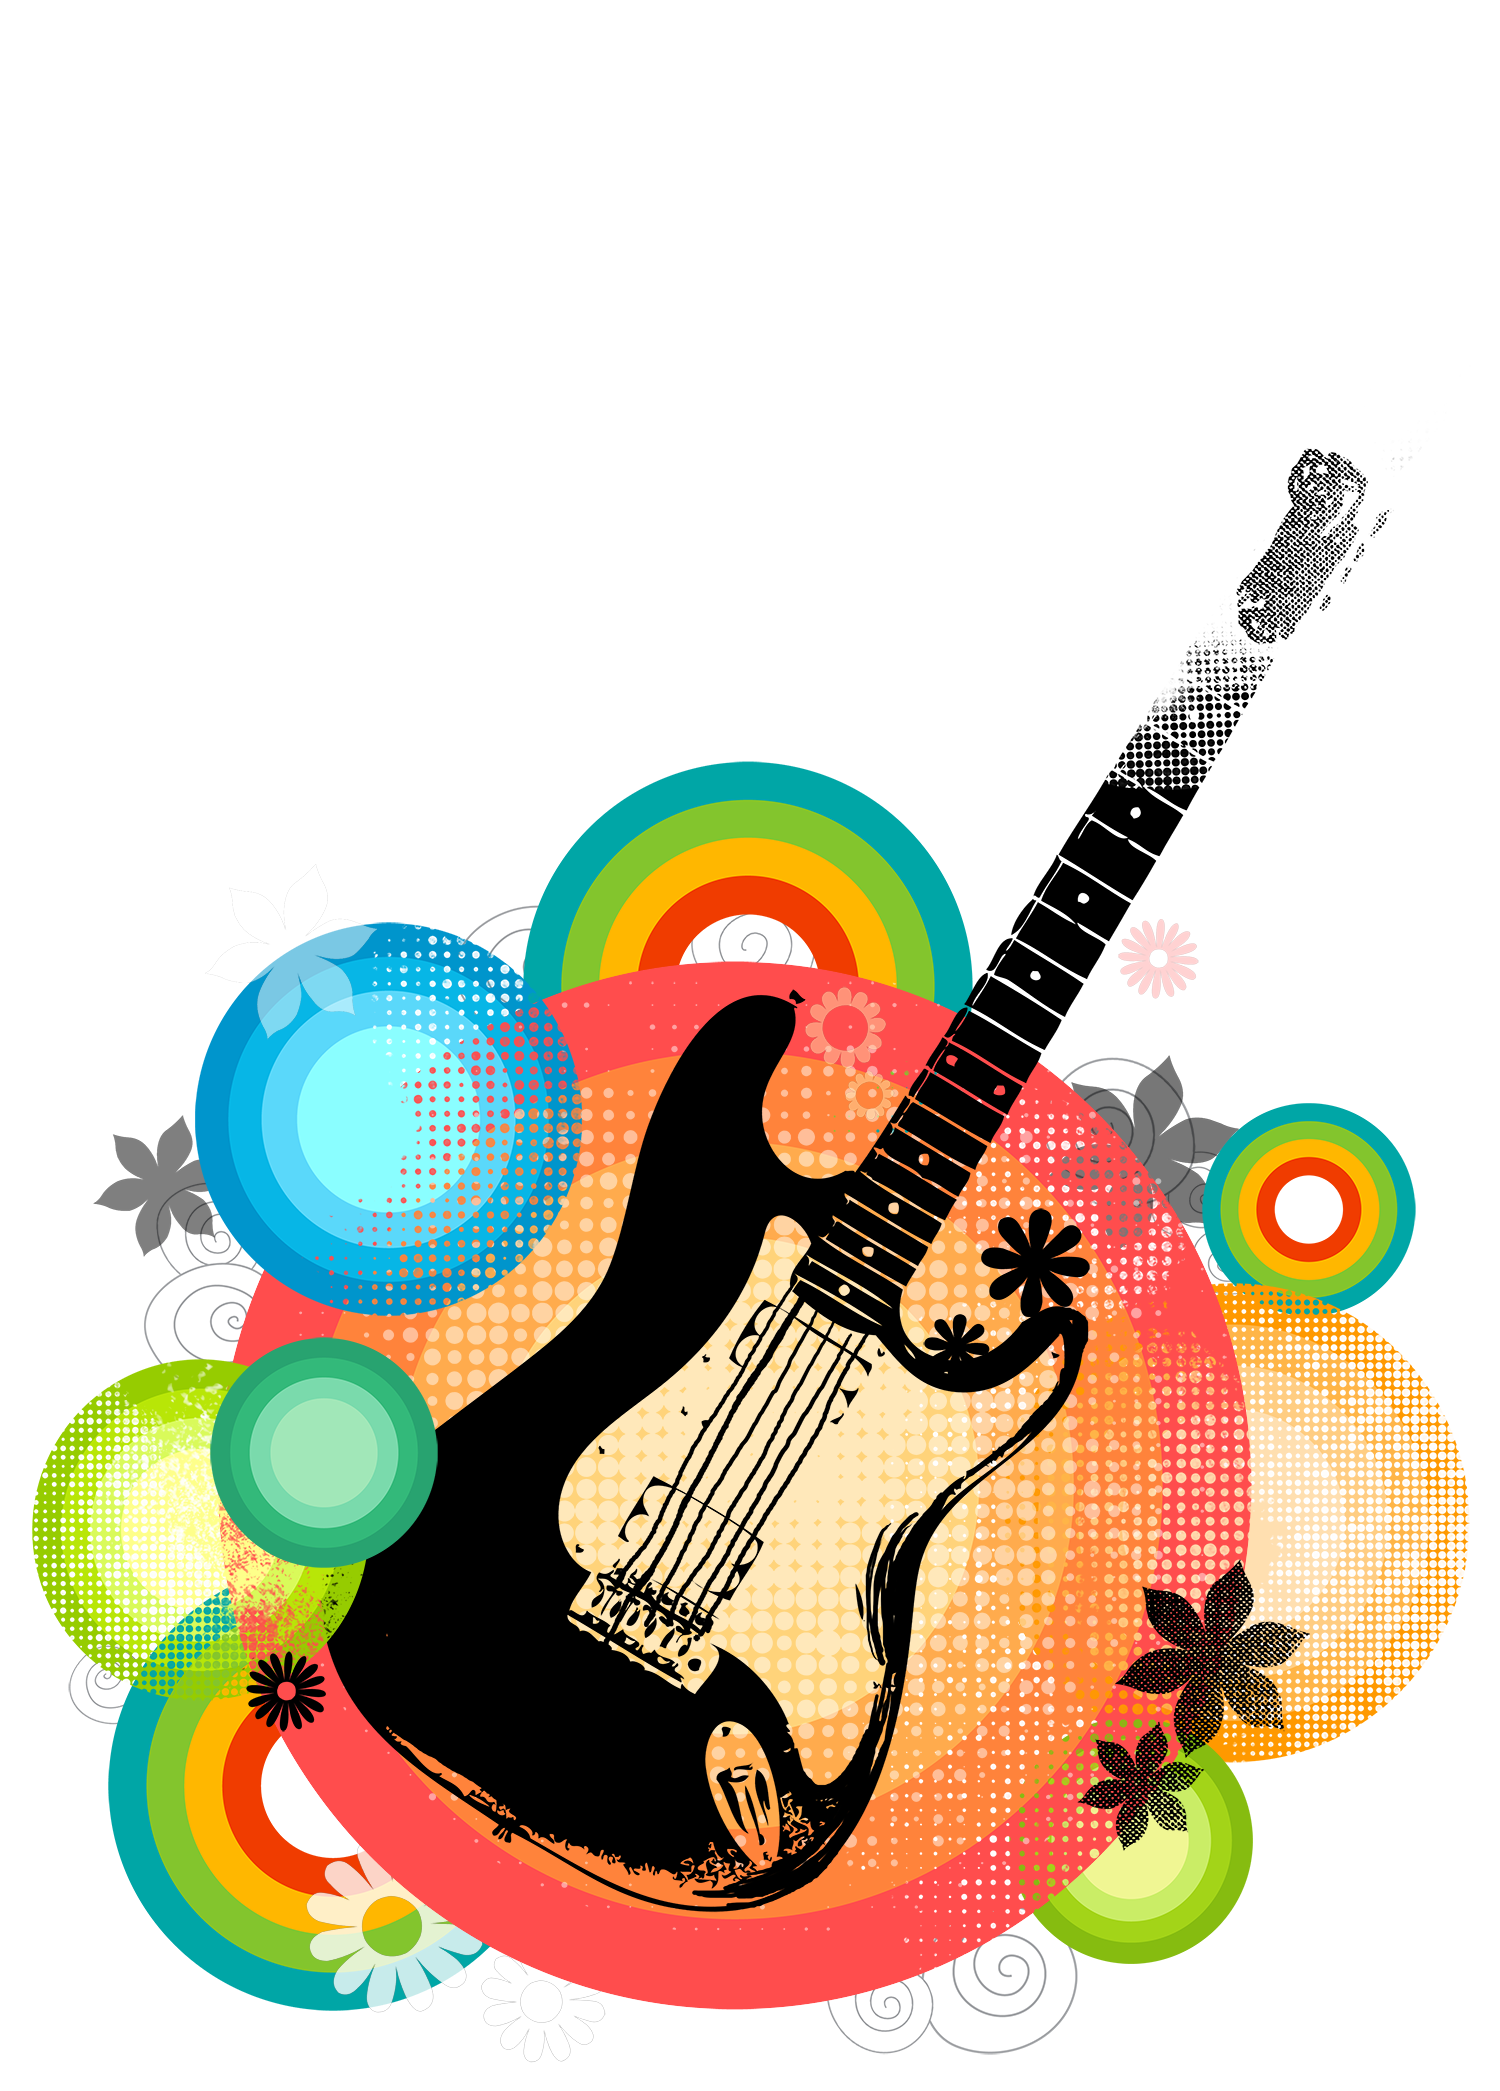 Clipart guitar photograph. Poster download art posters